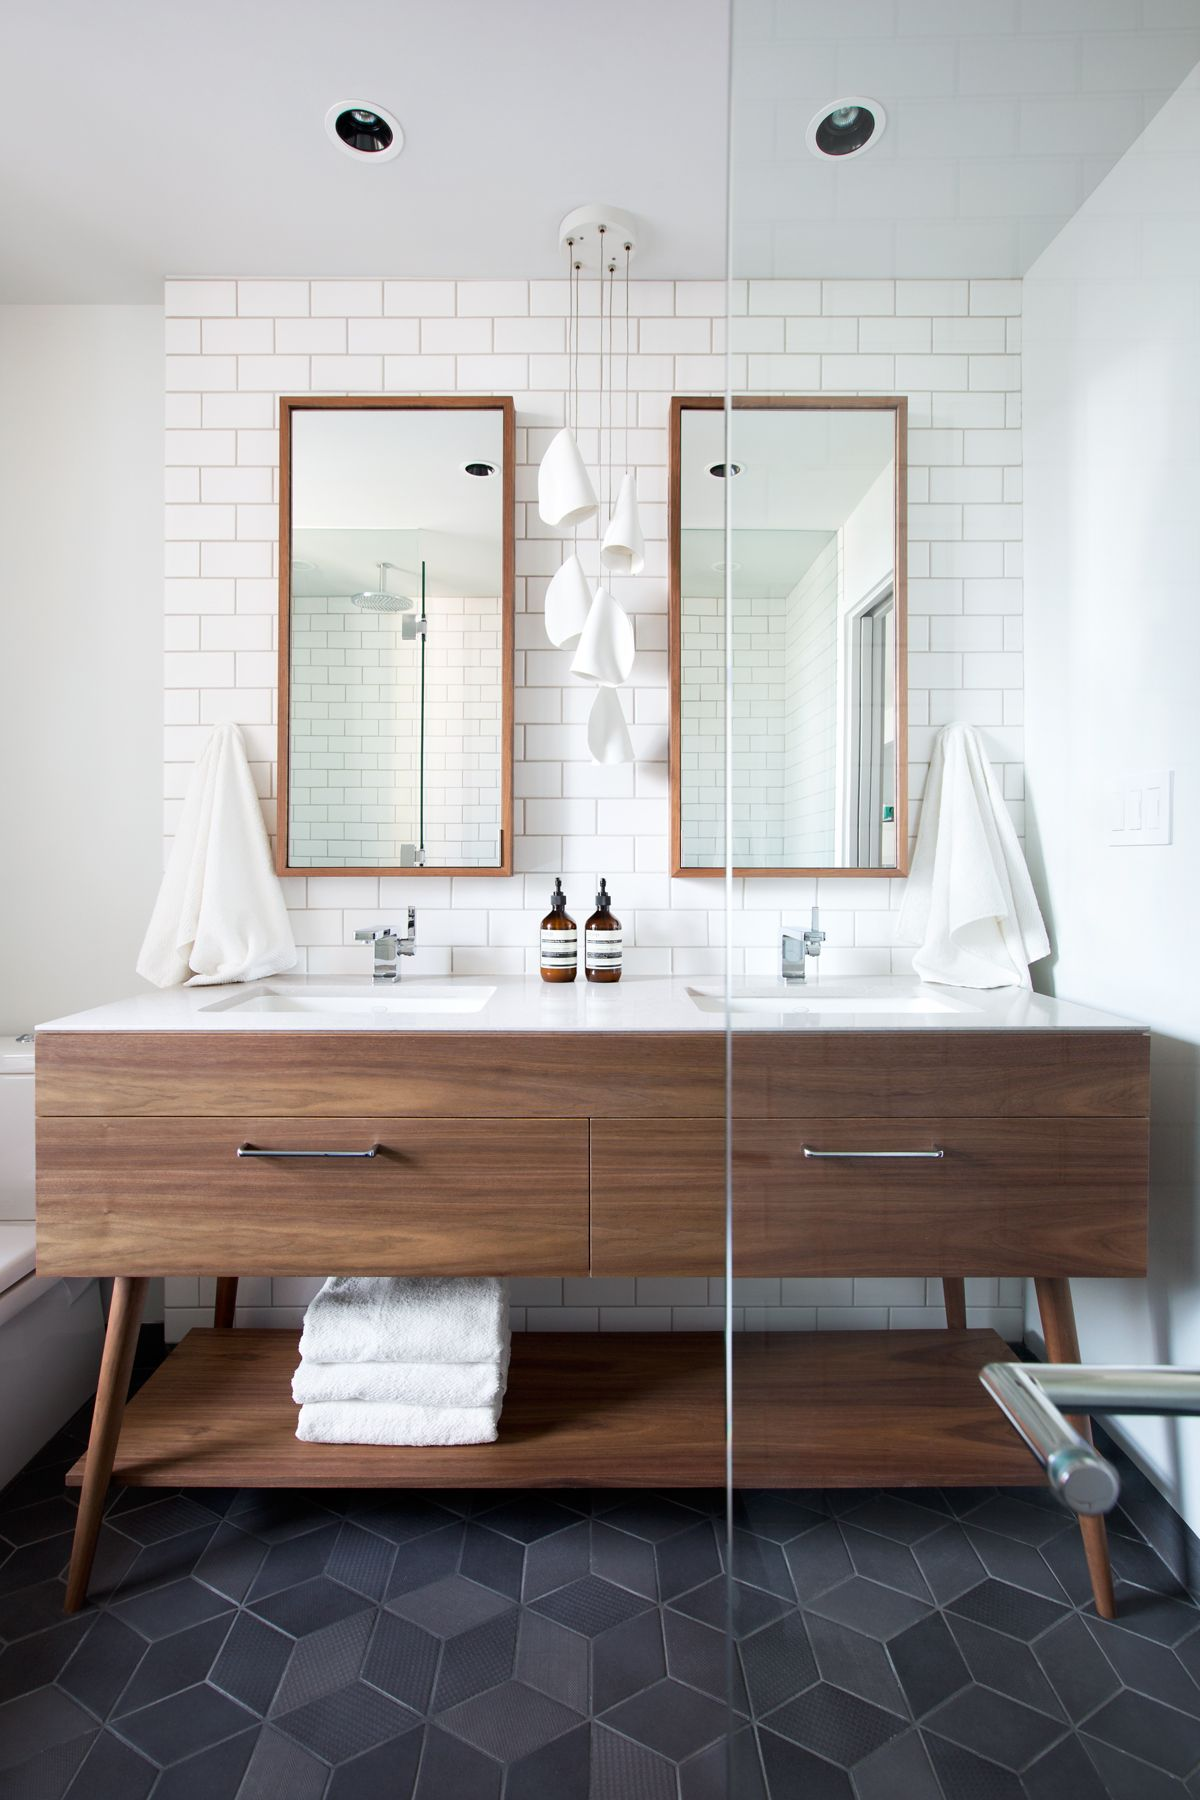 Interior design by falken reynolds vancouver loft ensuite interior design by falken reynolds vancouver loft ensuite bathroom with american mid century modern inspired dailygadgetfo Choice Image